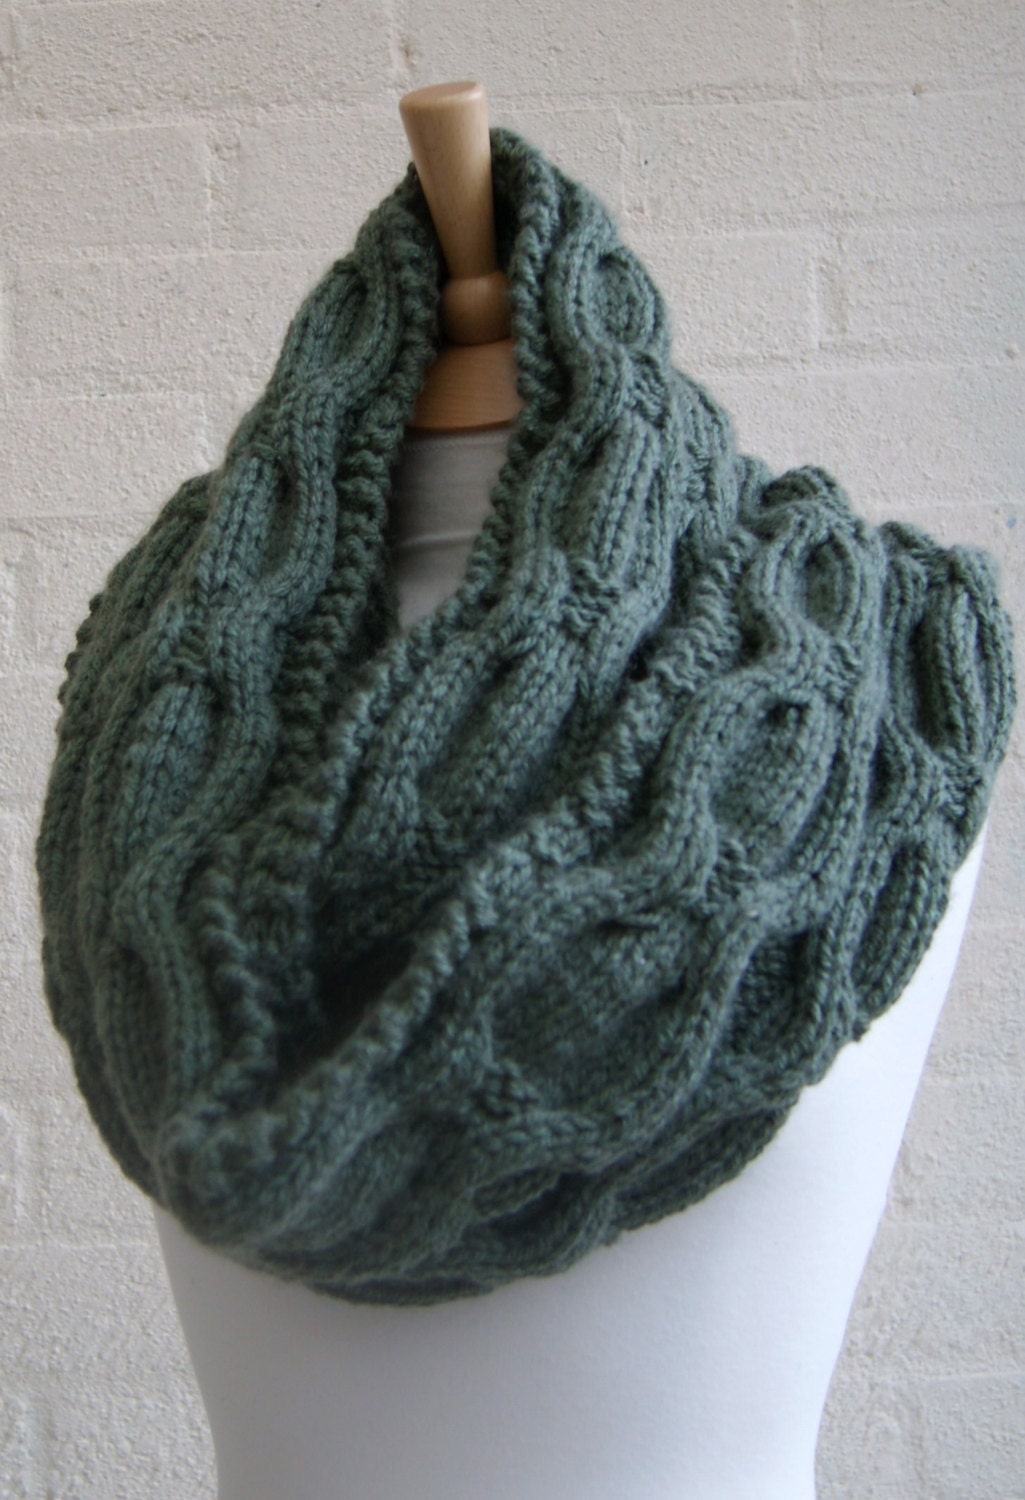 Cable Knit Infinity Scarf Pattern : Items similar to Chunky Knit Cable Infinity Scarf, Mens Scarf, Winter Sc...